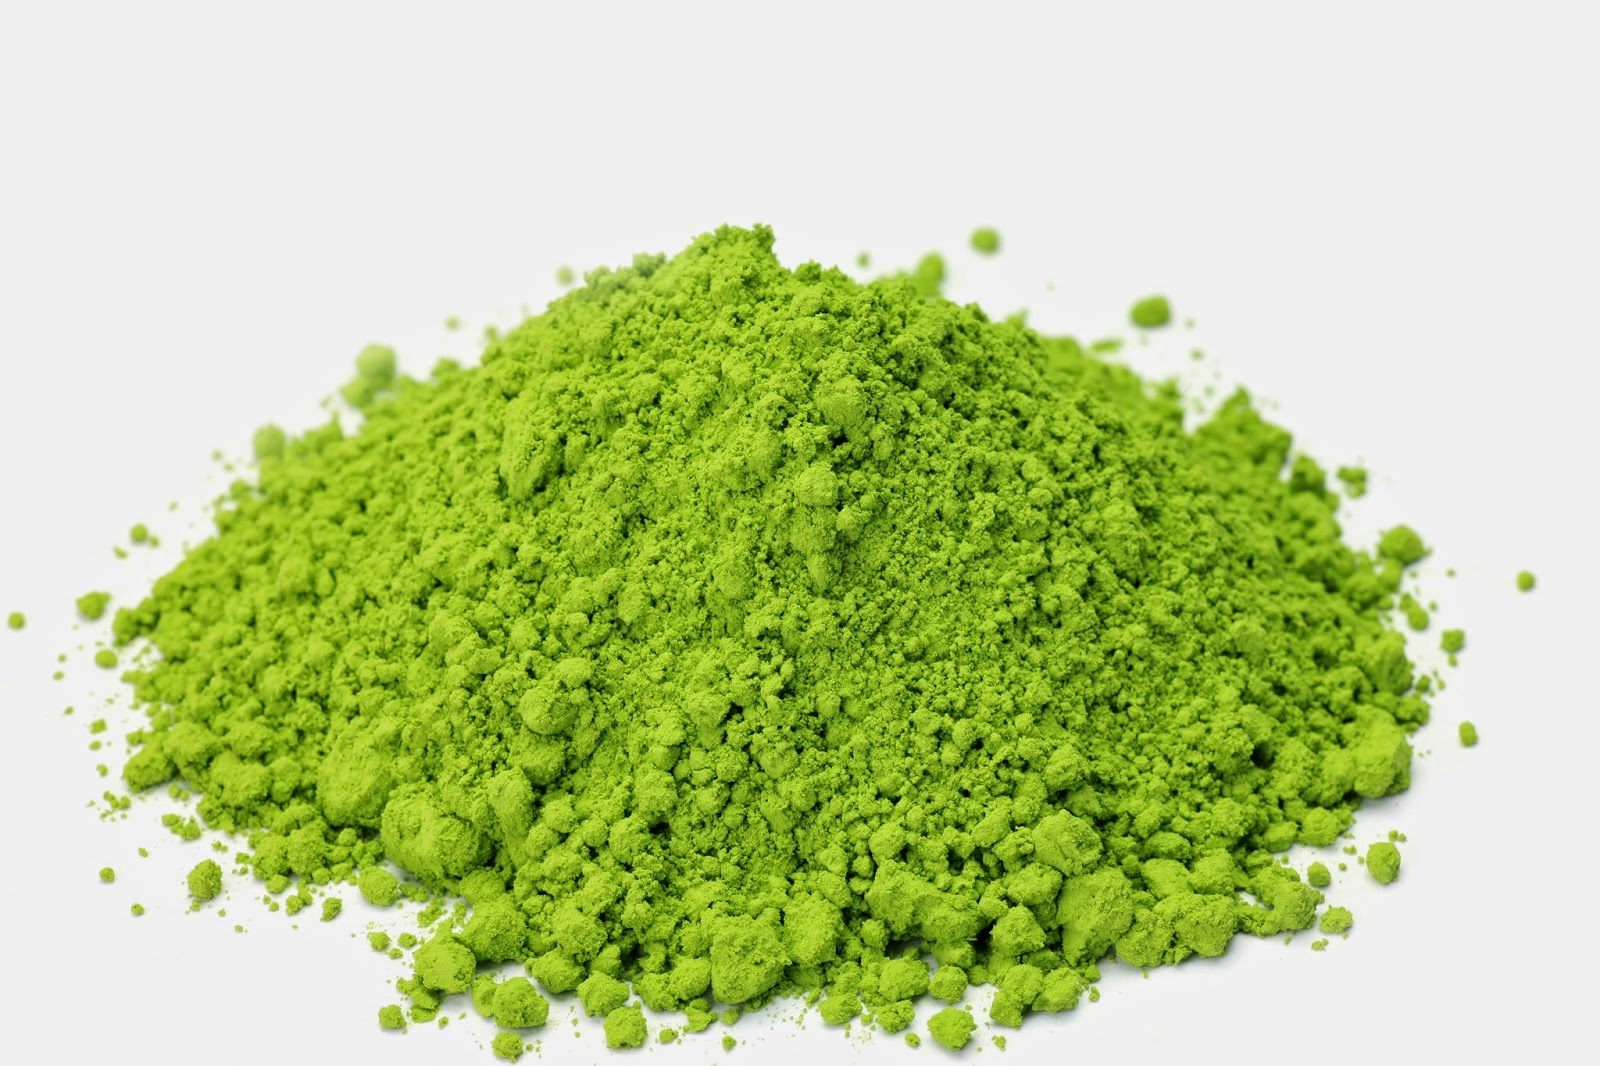 You can buy matcha from Mountain Rose Herbs. Click HERE